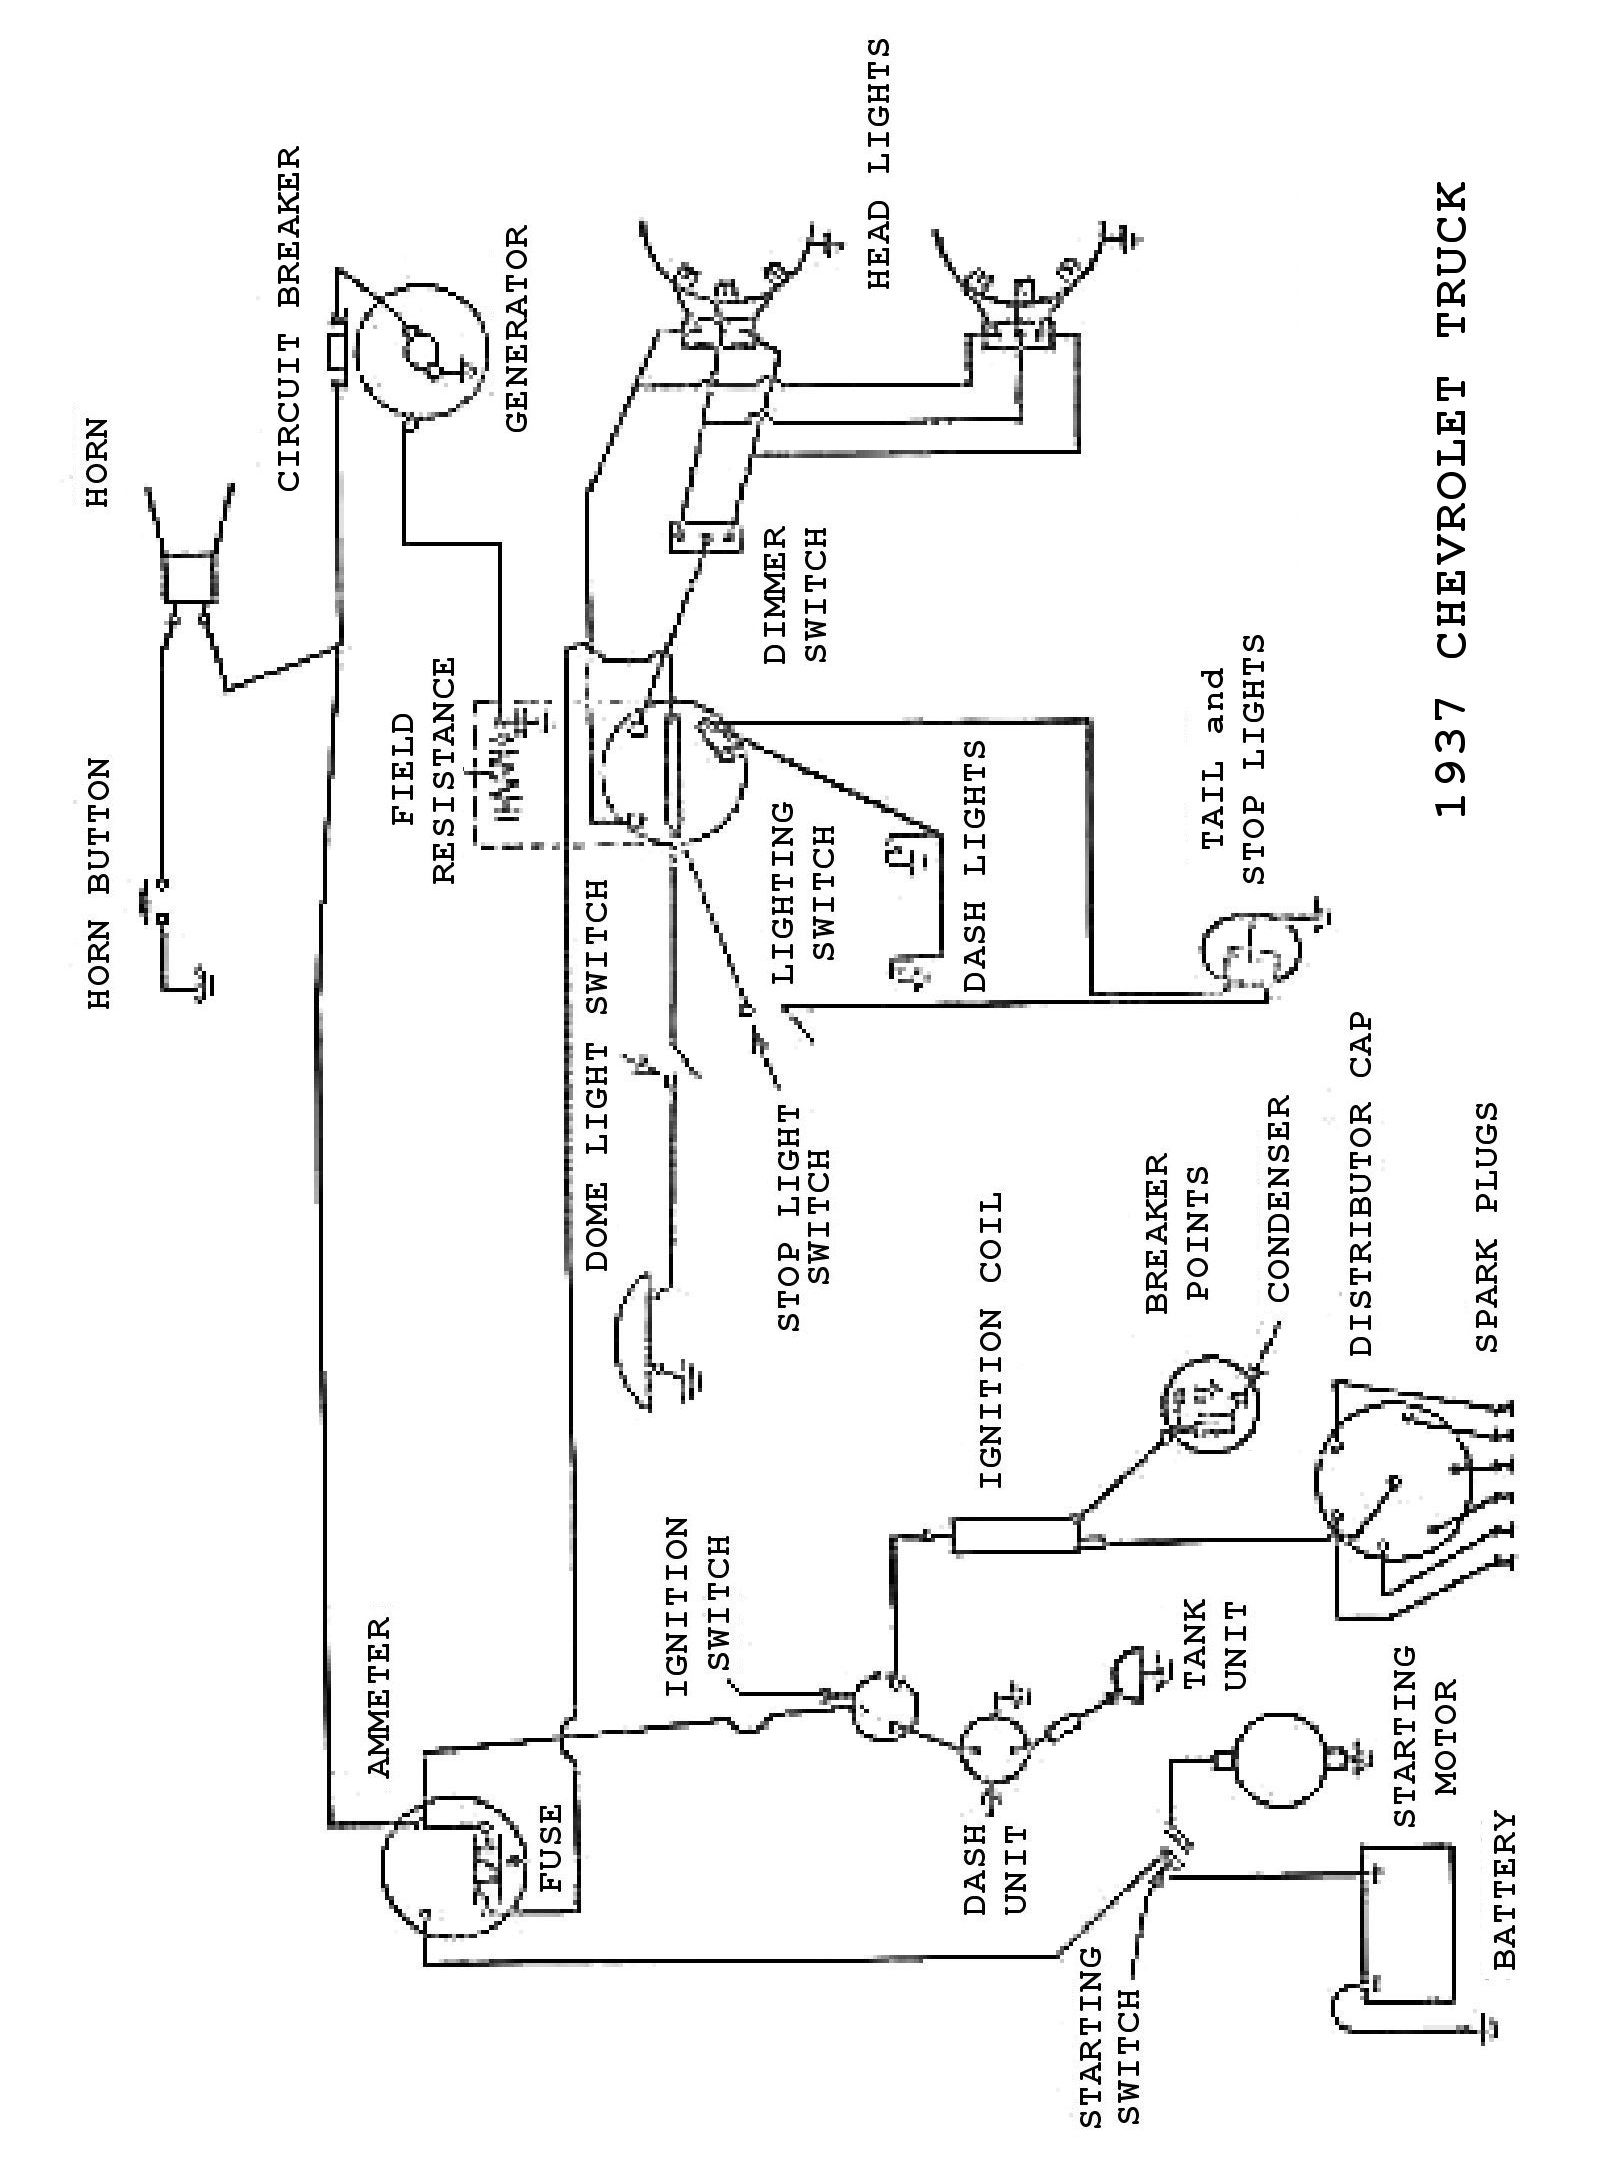 37truck chevy truck wiring diagram chevy fuel pump wiring diagram \u2022 wiring 1998 chevy silverado tail light wiring diagram at aneh.co